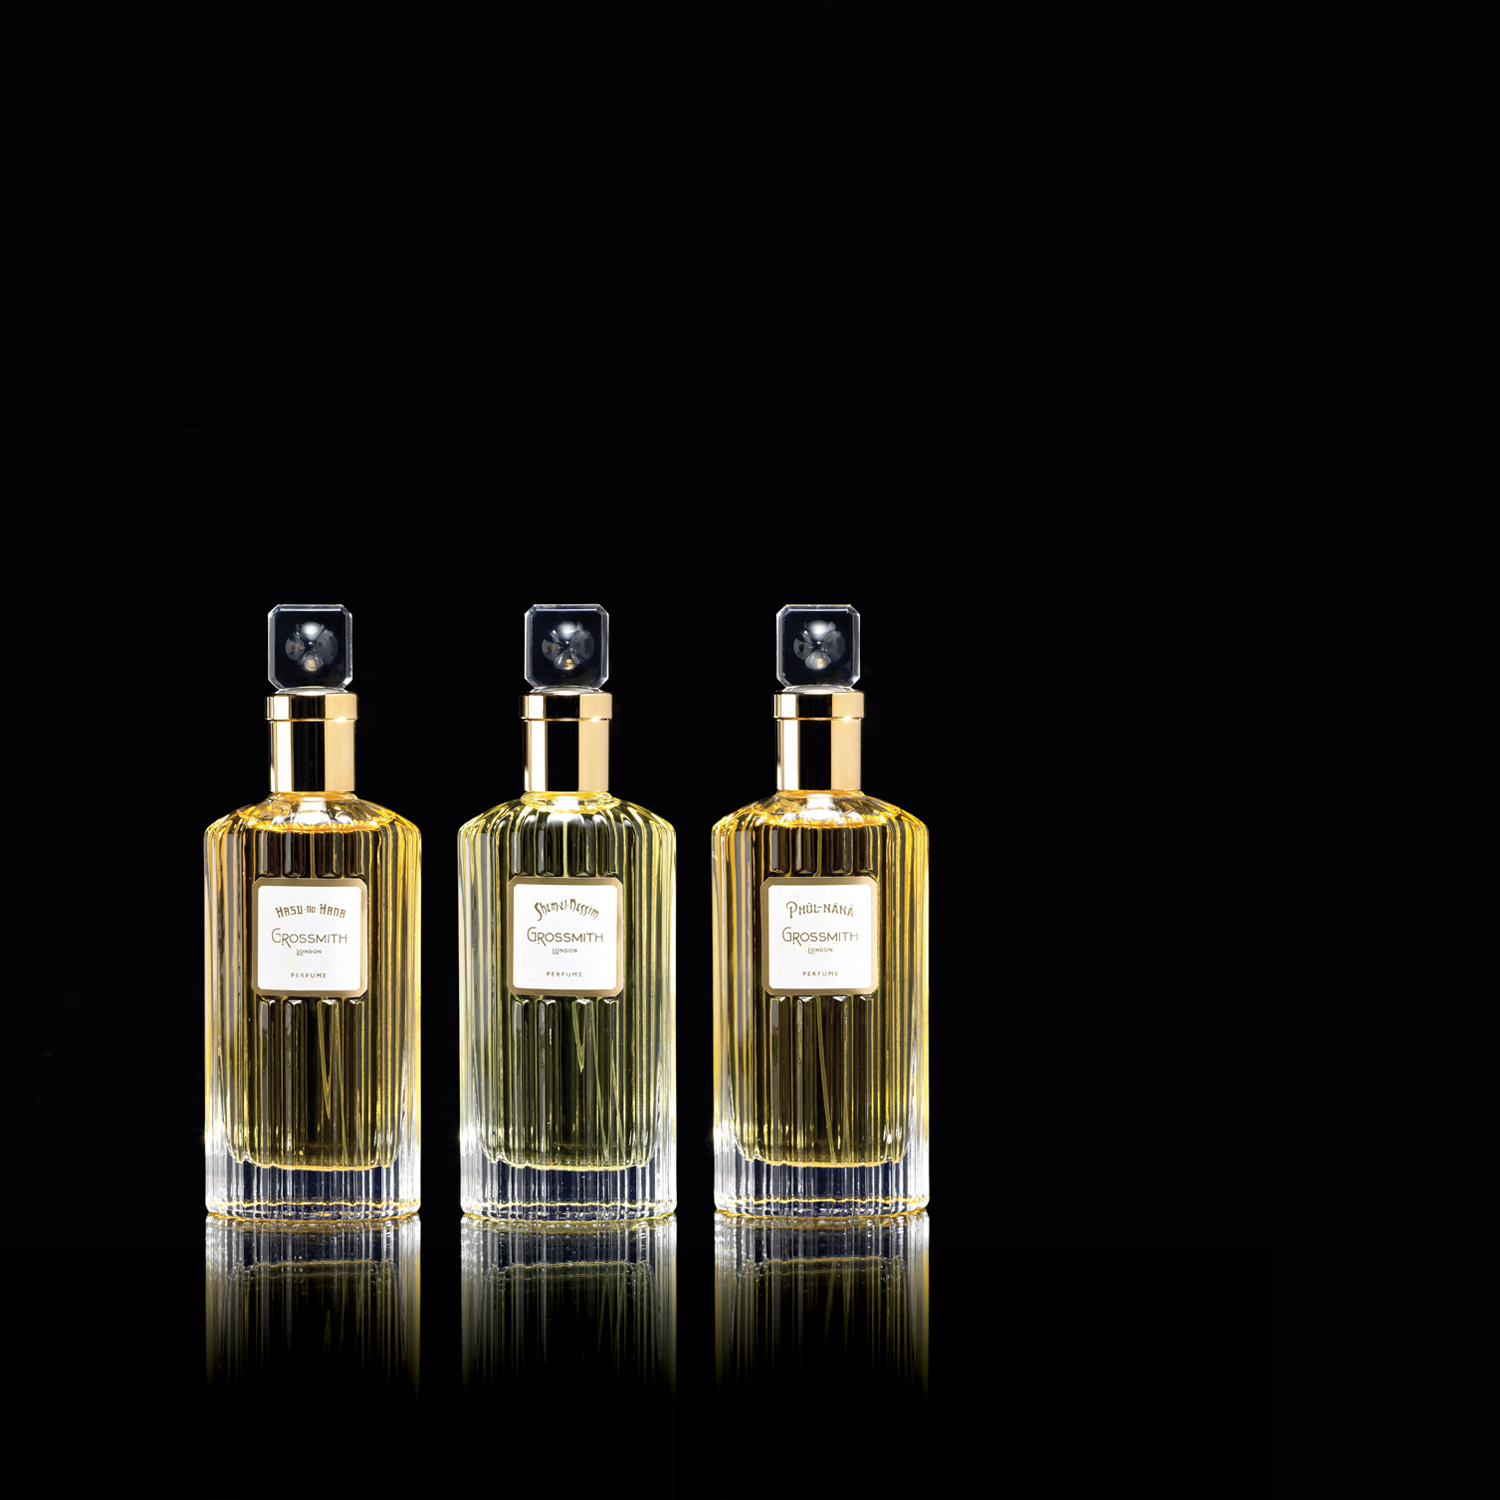 Grossmith Classic Collection Perfumes